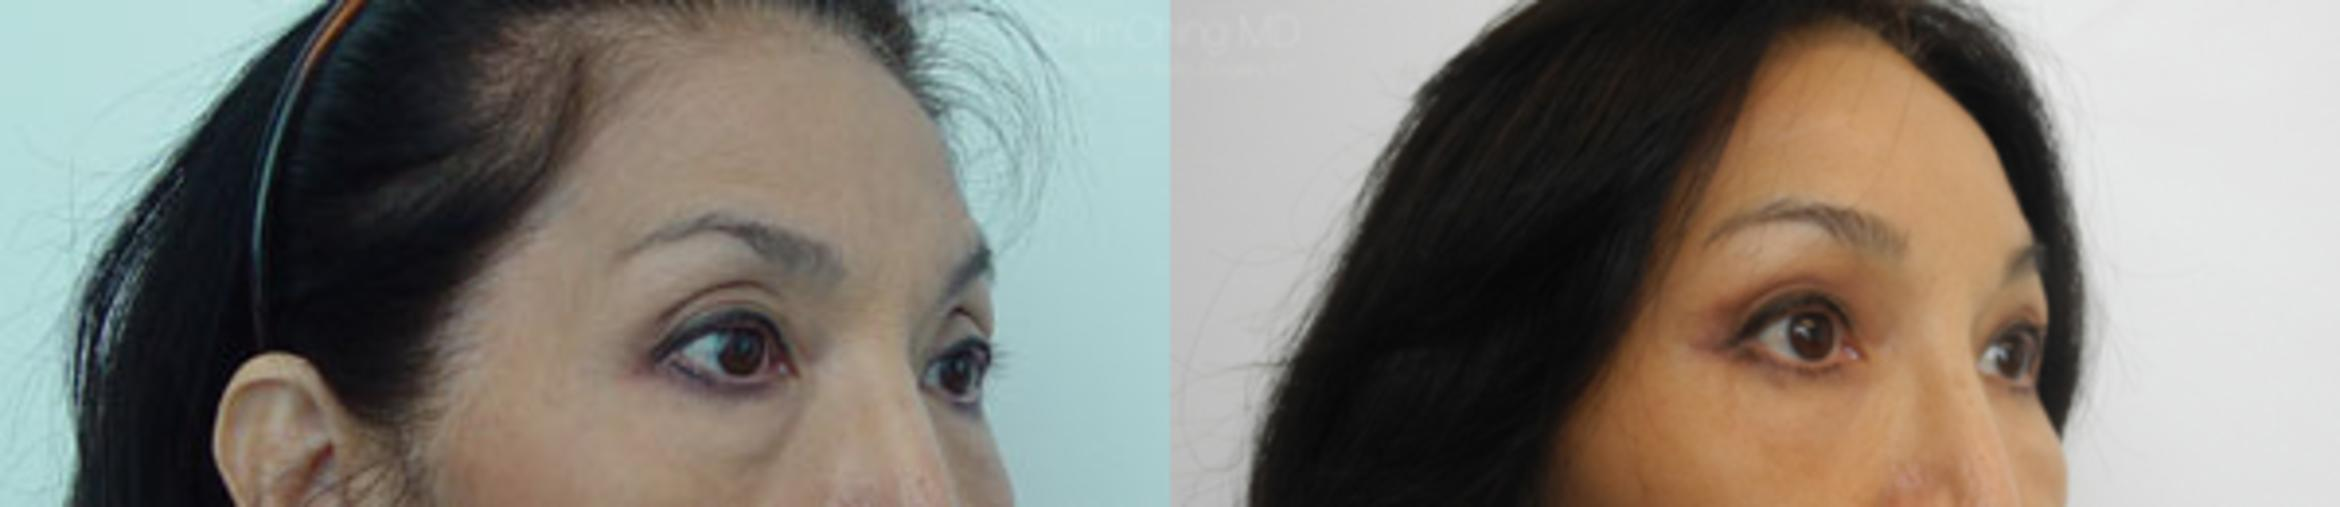 Asian Cosmetic Surgery Case 216 Before & After View #1 | Honolulu, HI | Shim Ching, MD: Asia Pacific Plastic Surgery